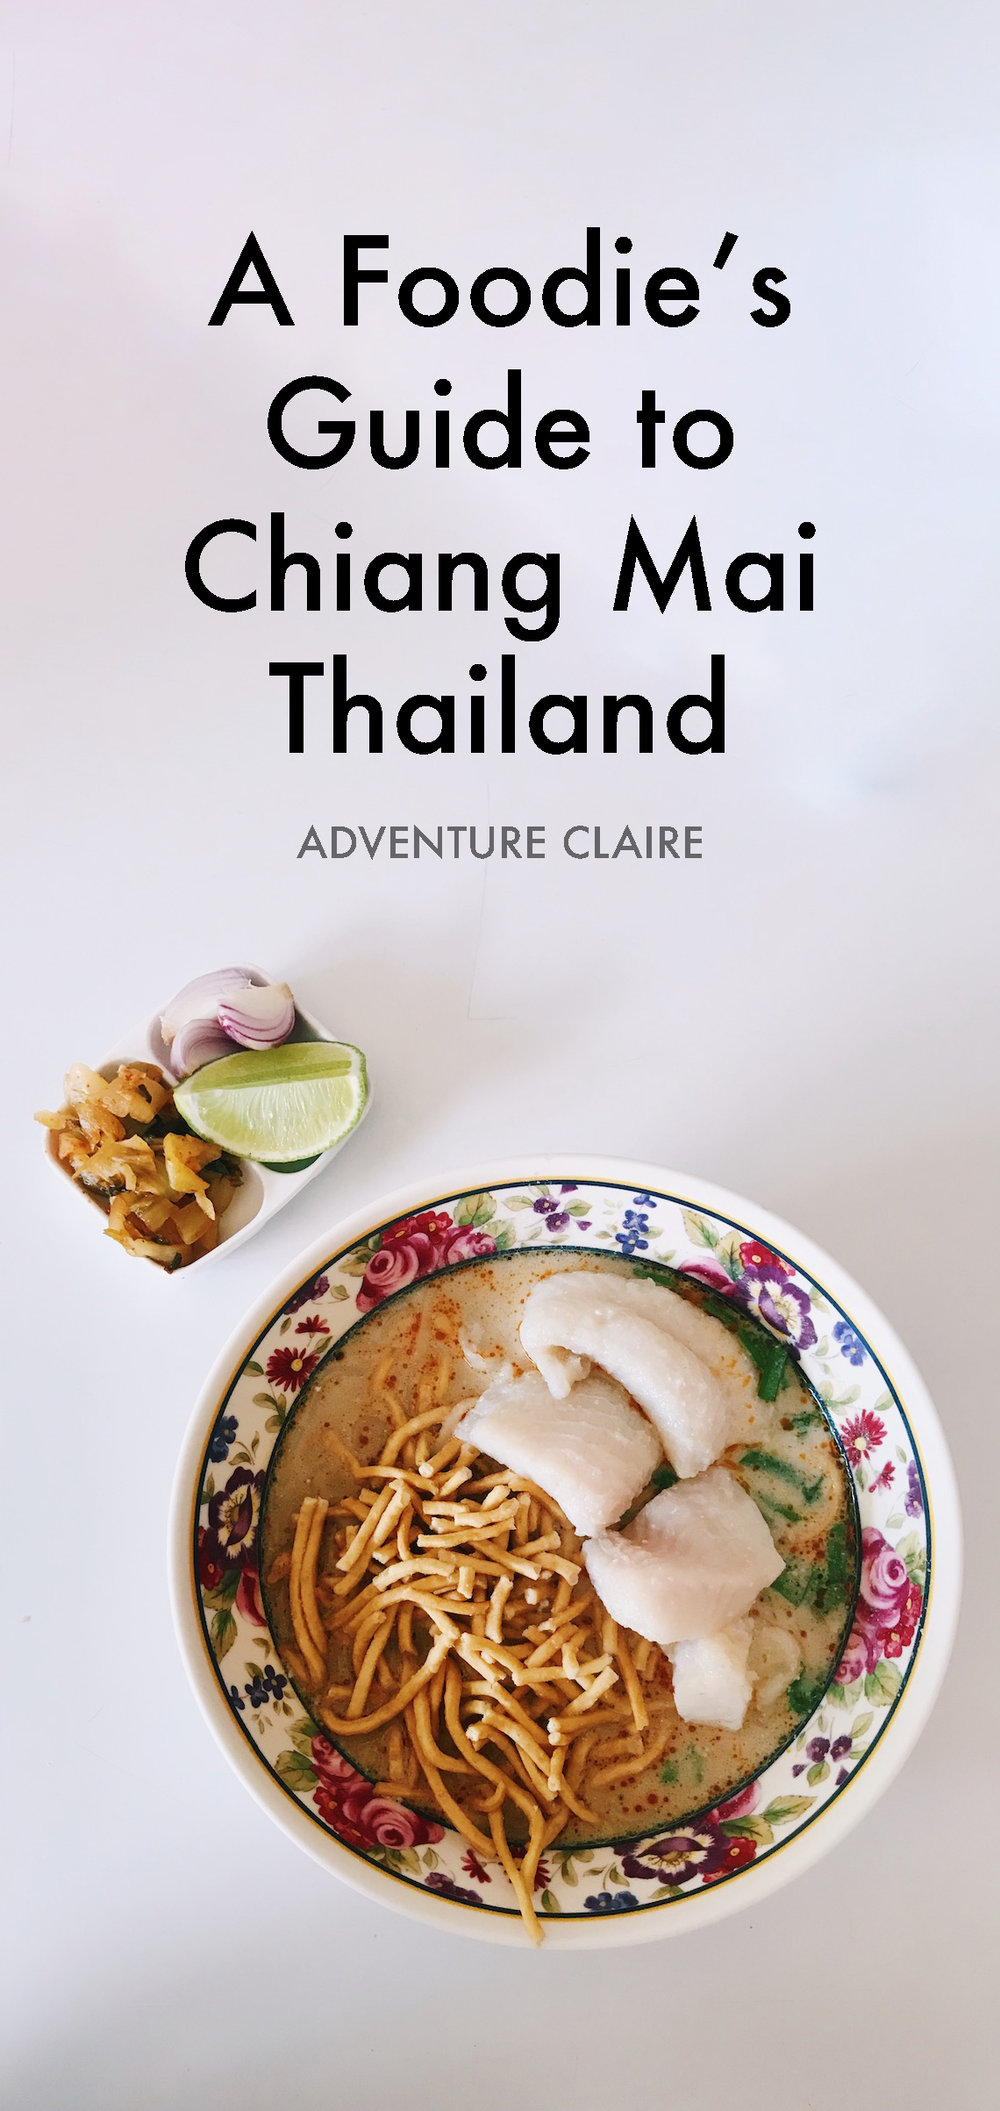 The Foodie Guide to Chiang Mai Thailand - Adventure Claire - Where to Eat in Chiang Mai